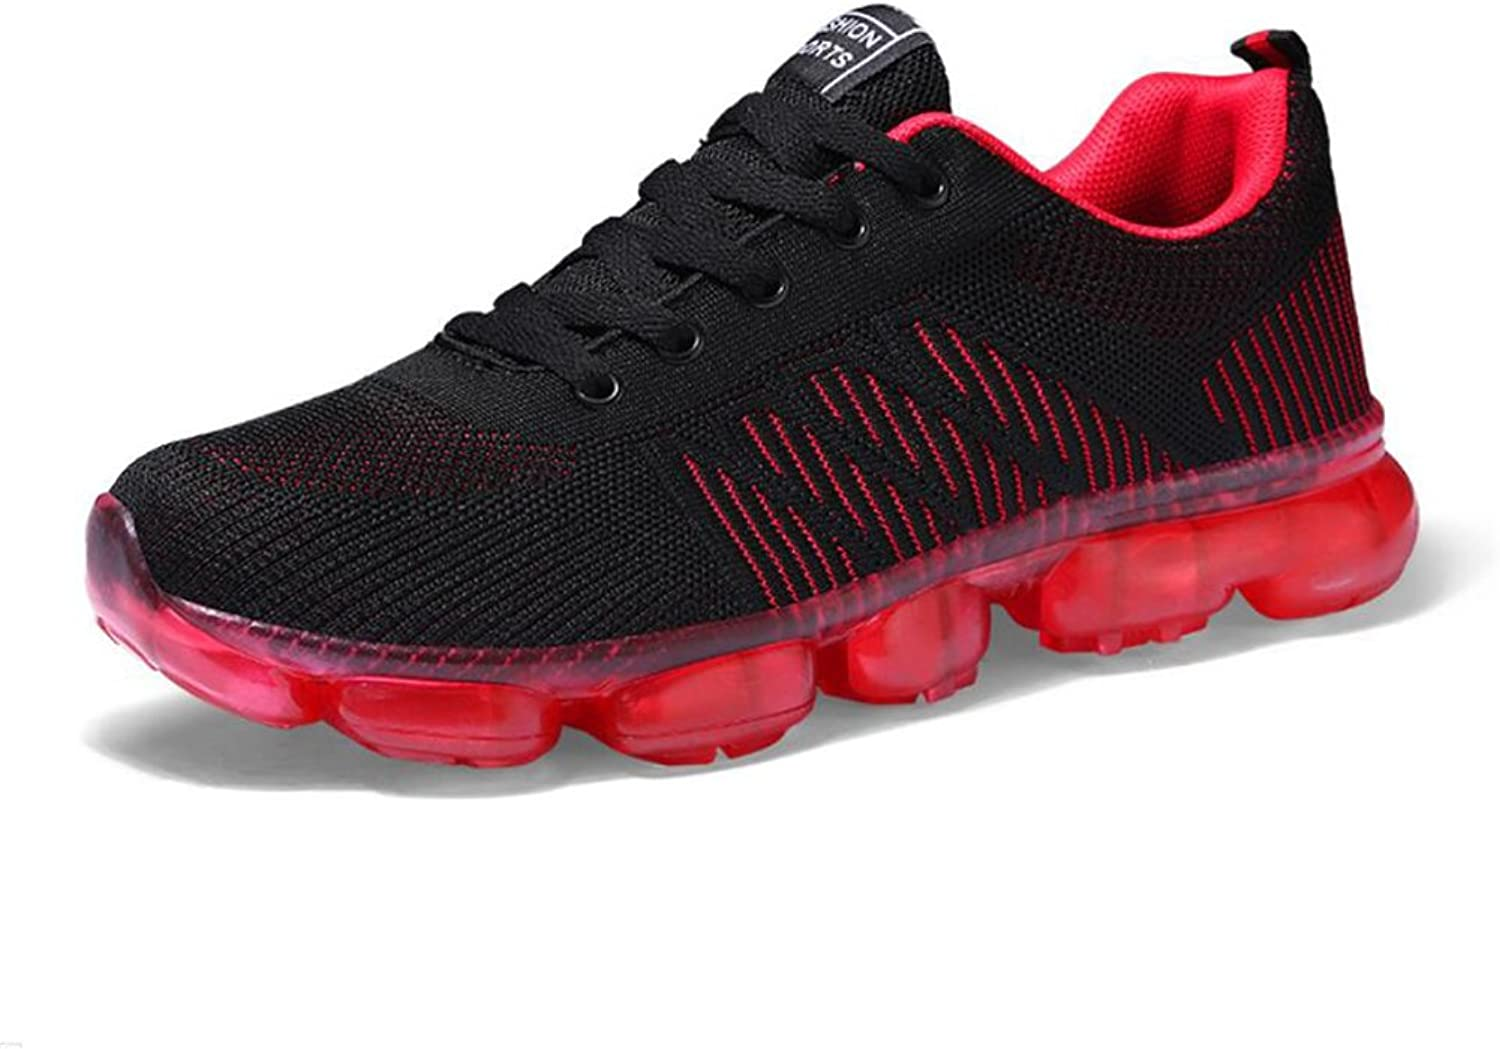 XUE Men's shoes Knit Fall Comfort Athletic shoes Running shoes Outdoor Walking shoes ,Casual Breathable,Fitness shoes (color   A, Size   44)